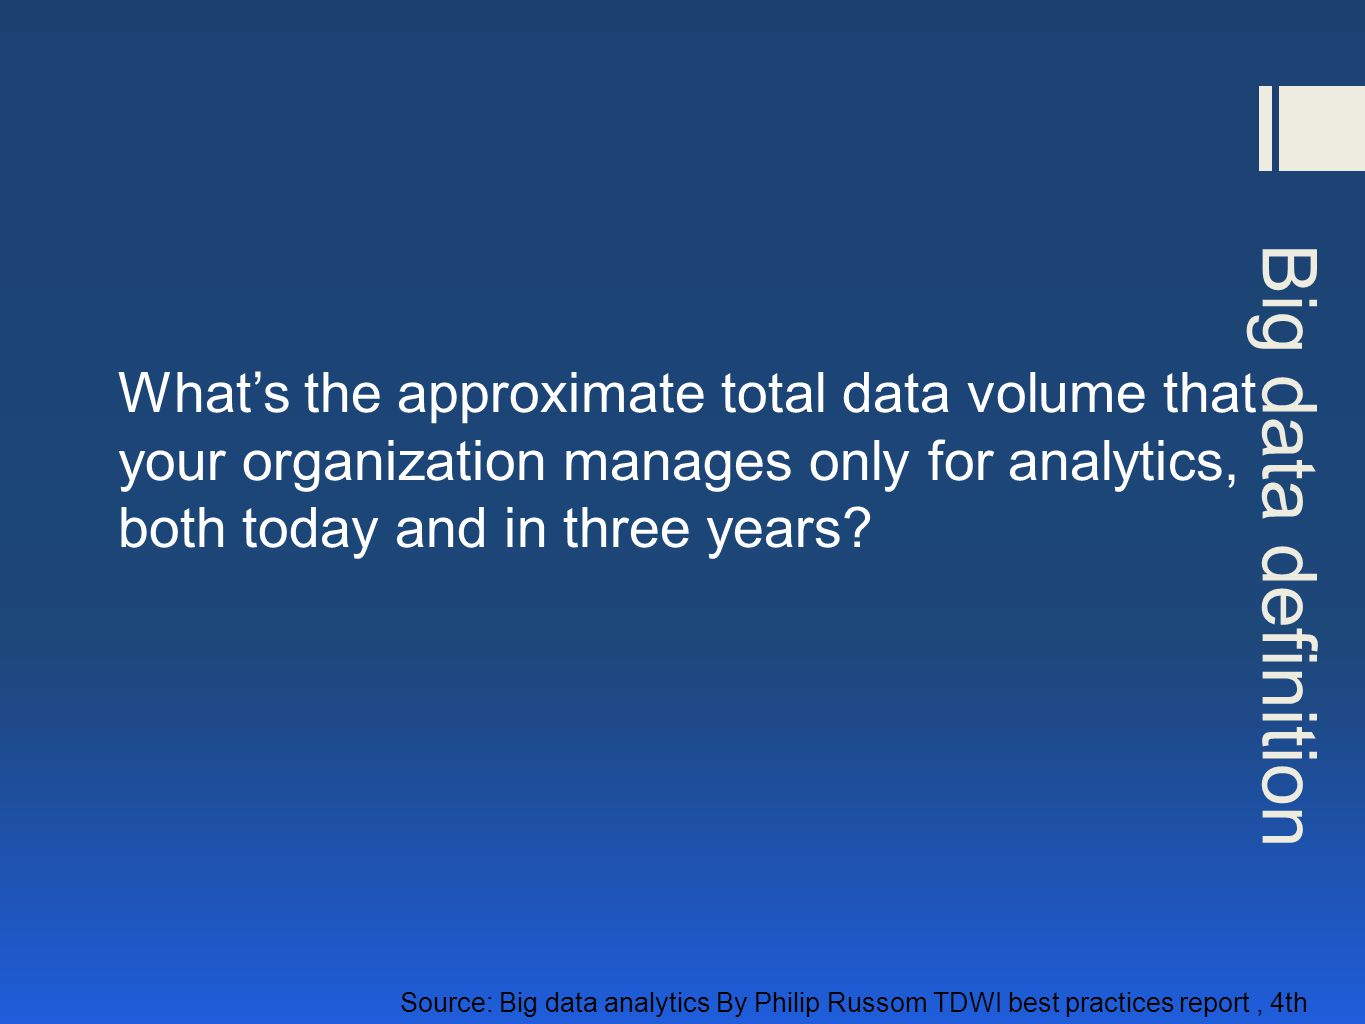 Big data definition Source: Big data analytics By Philip Russom TDWI best practices report, 4th Quarter 2011 What's the approximate total data volume that your organization manages only for analytics, both today and in three years